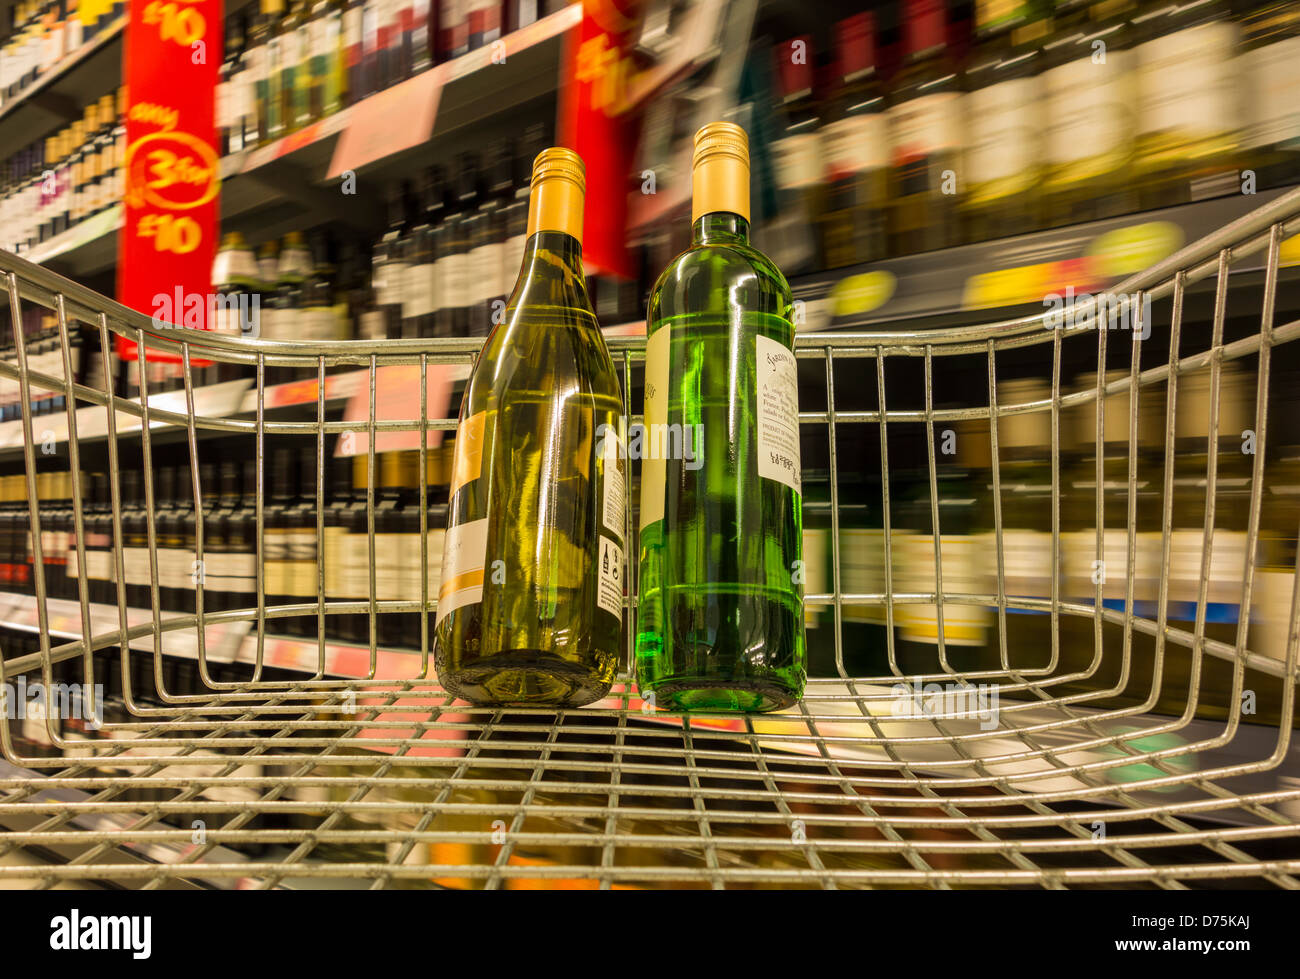 Bottles of wine in shopping trolley with 3 for 10 pound sing in background. Asda supermarket, England, UK - Stock Image